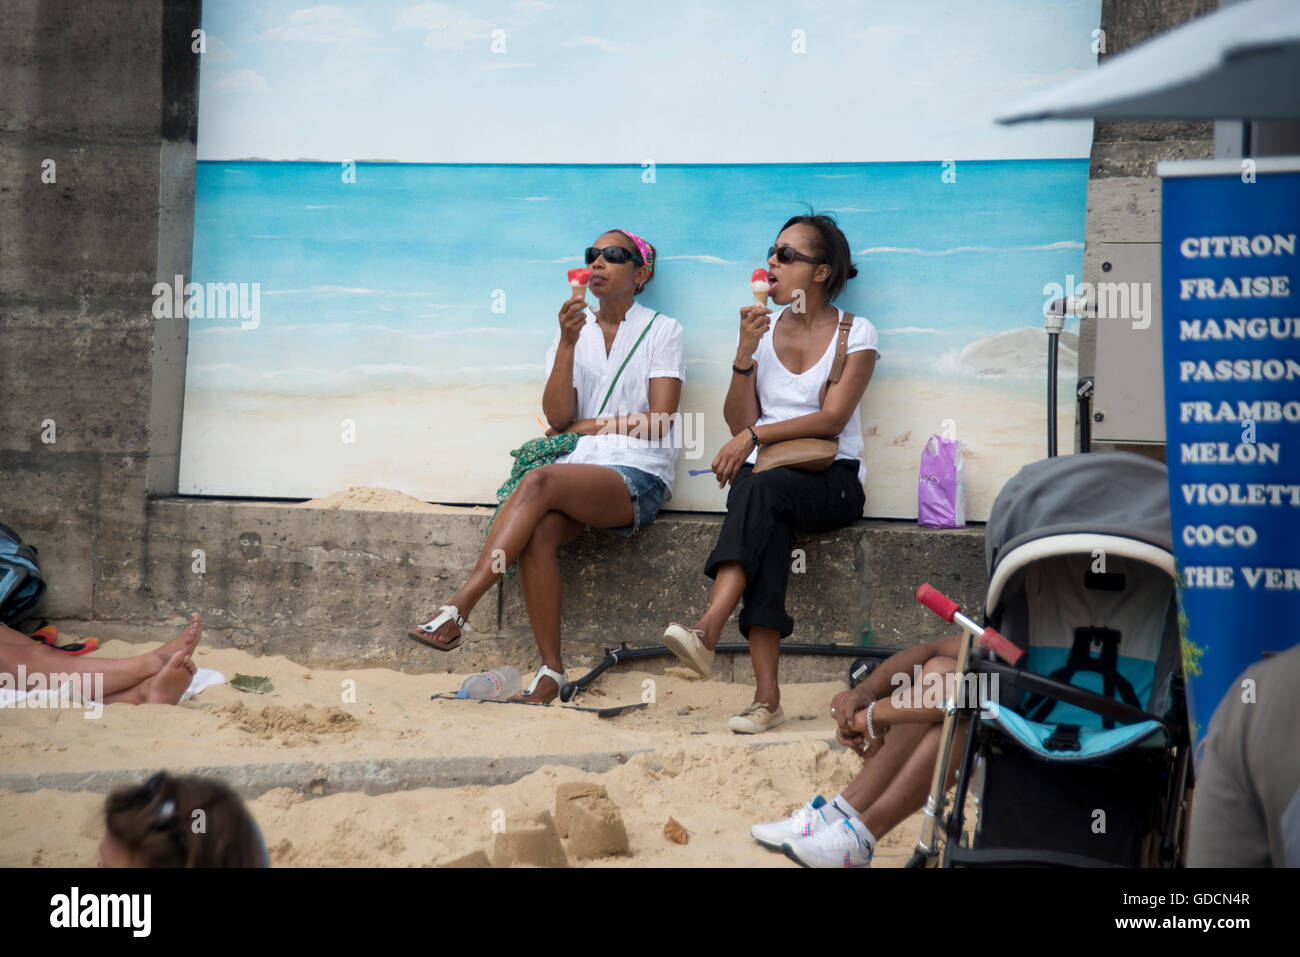 two women eating ice cream at Paris plages - Stock Image